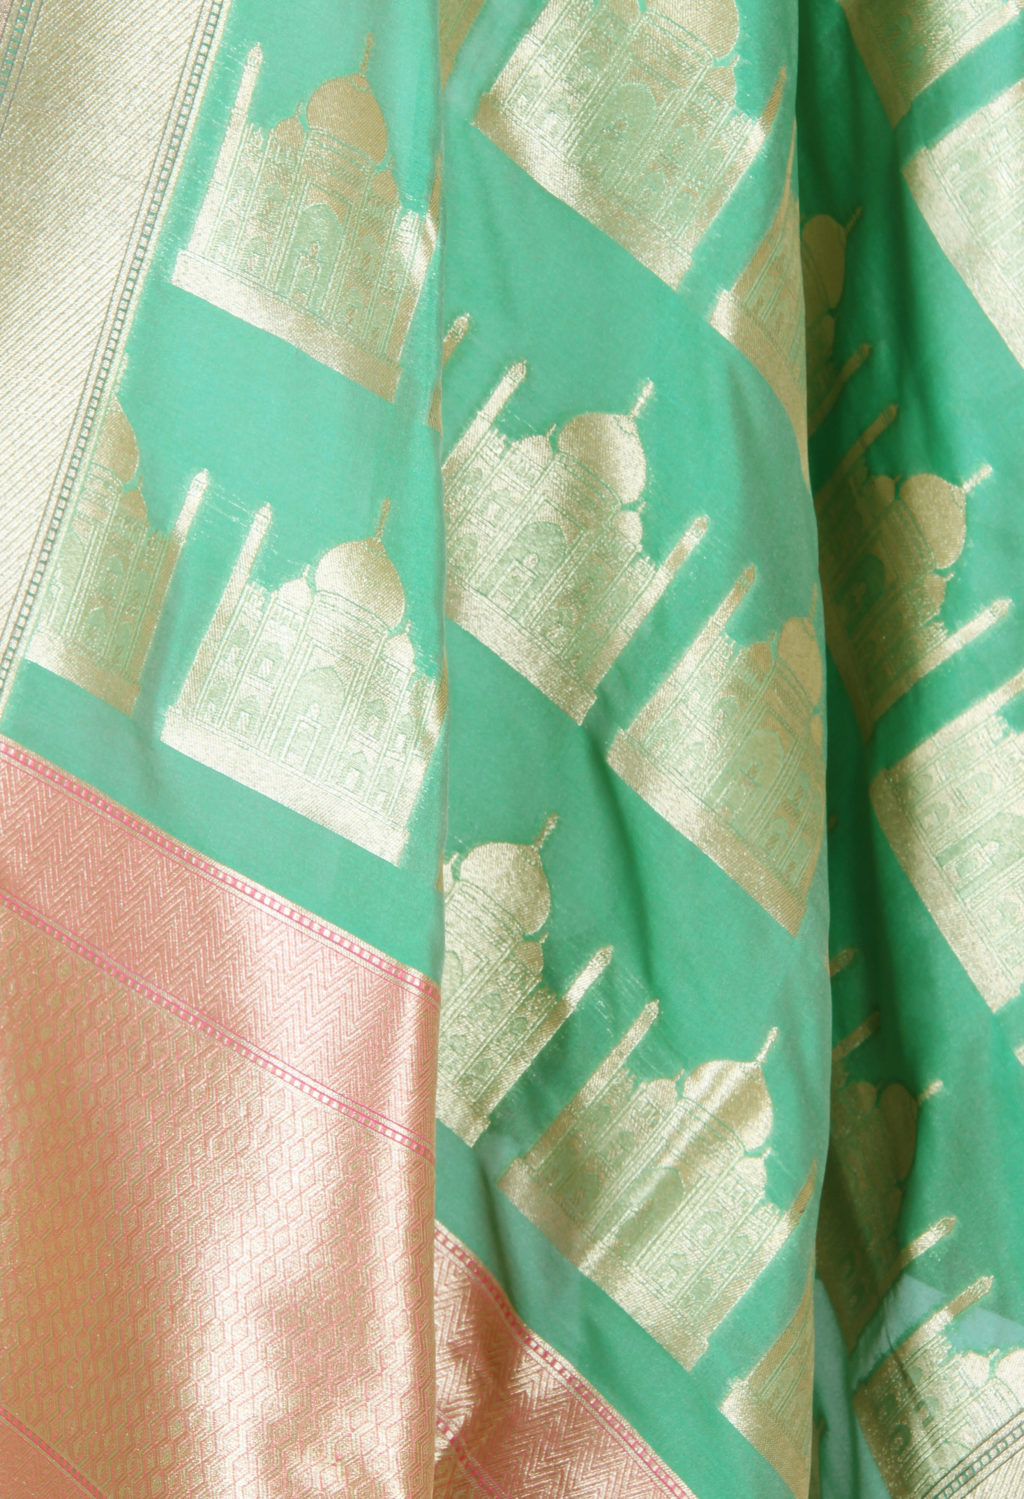 Fern Green art silk Banarasi dupatta with Taj mahal motifs (2) Close up